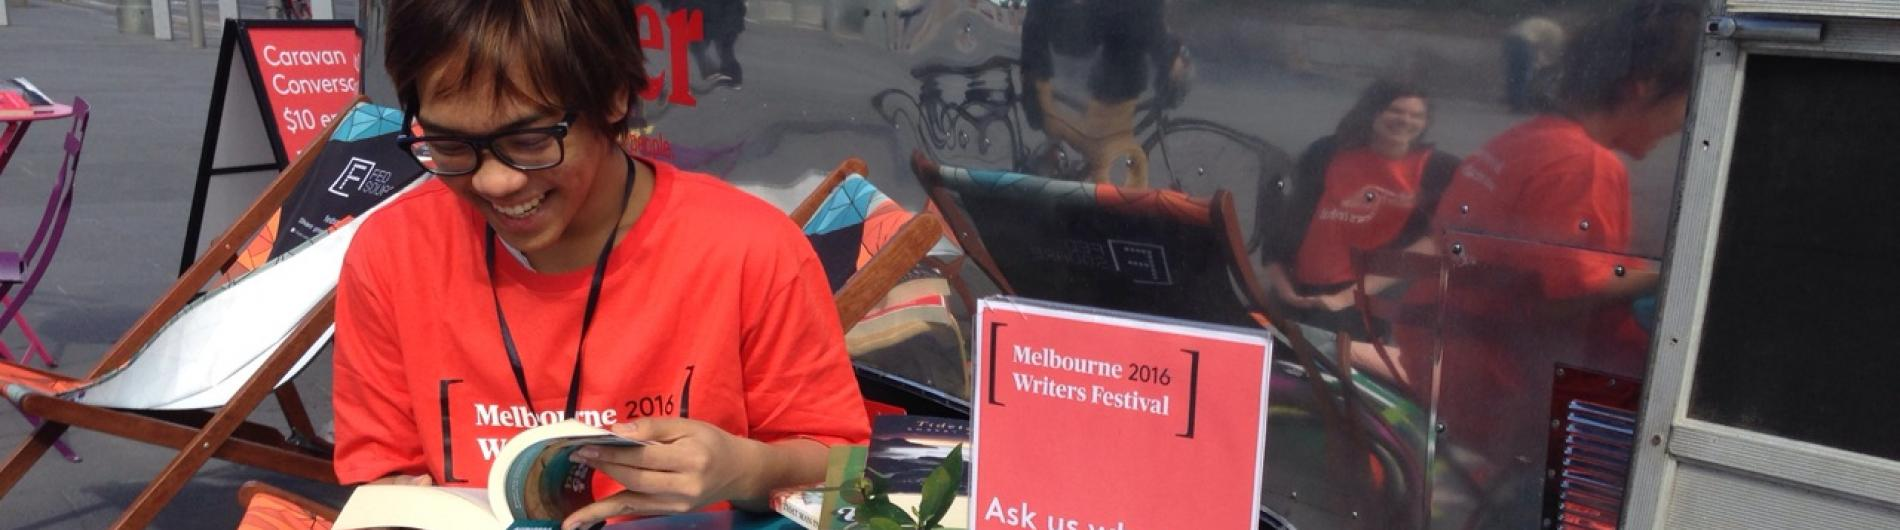 Caravan Conversations at Melbourne Writers Festival